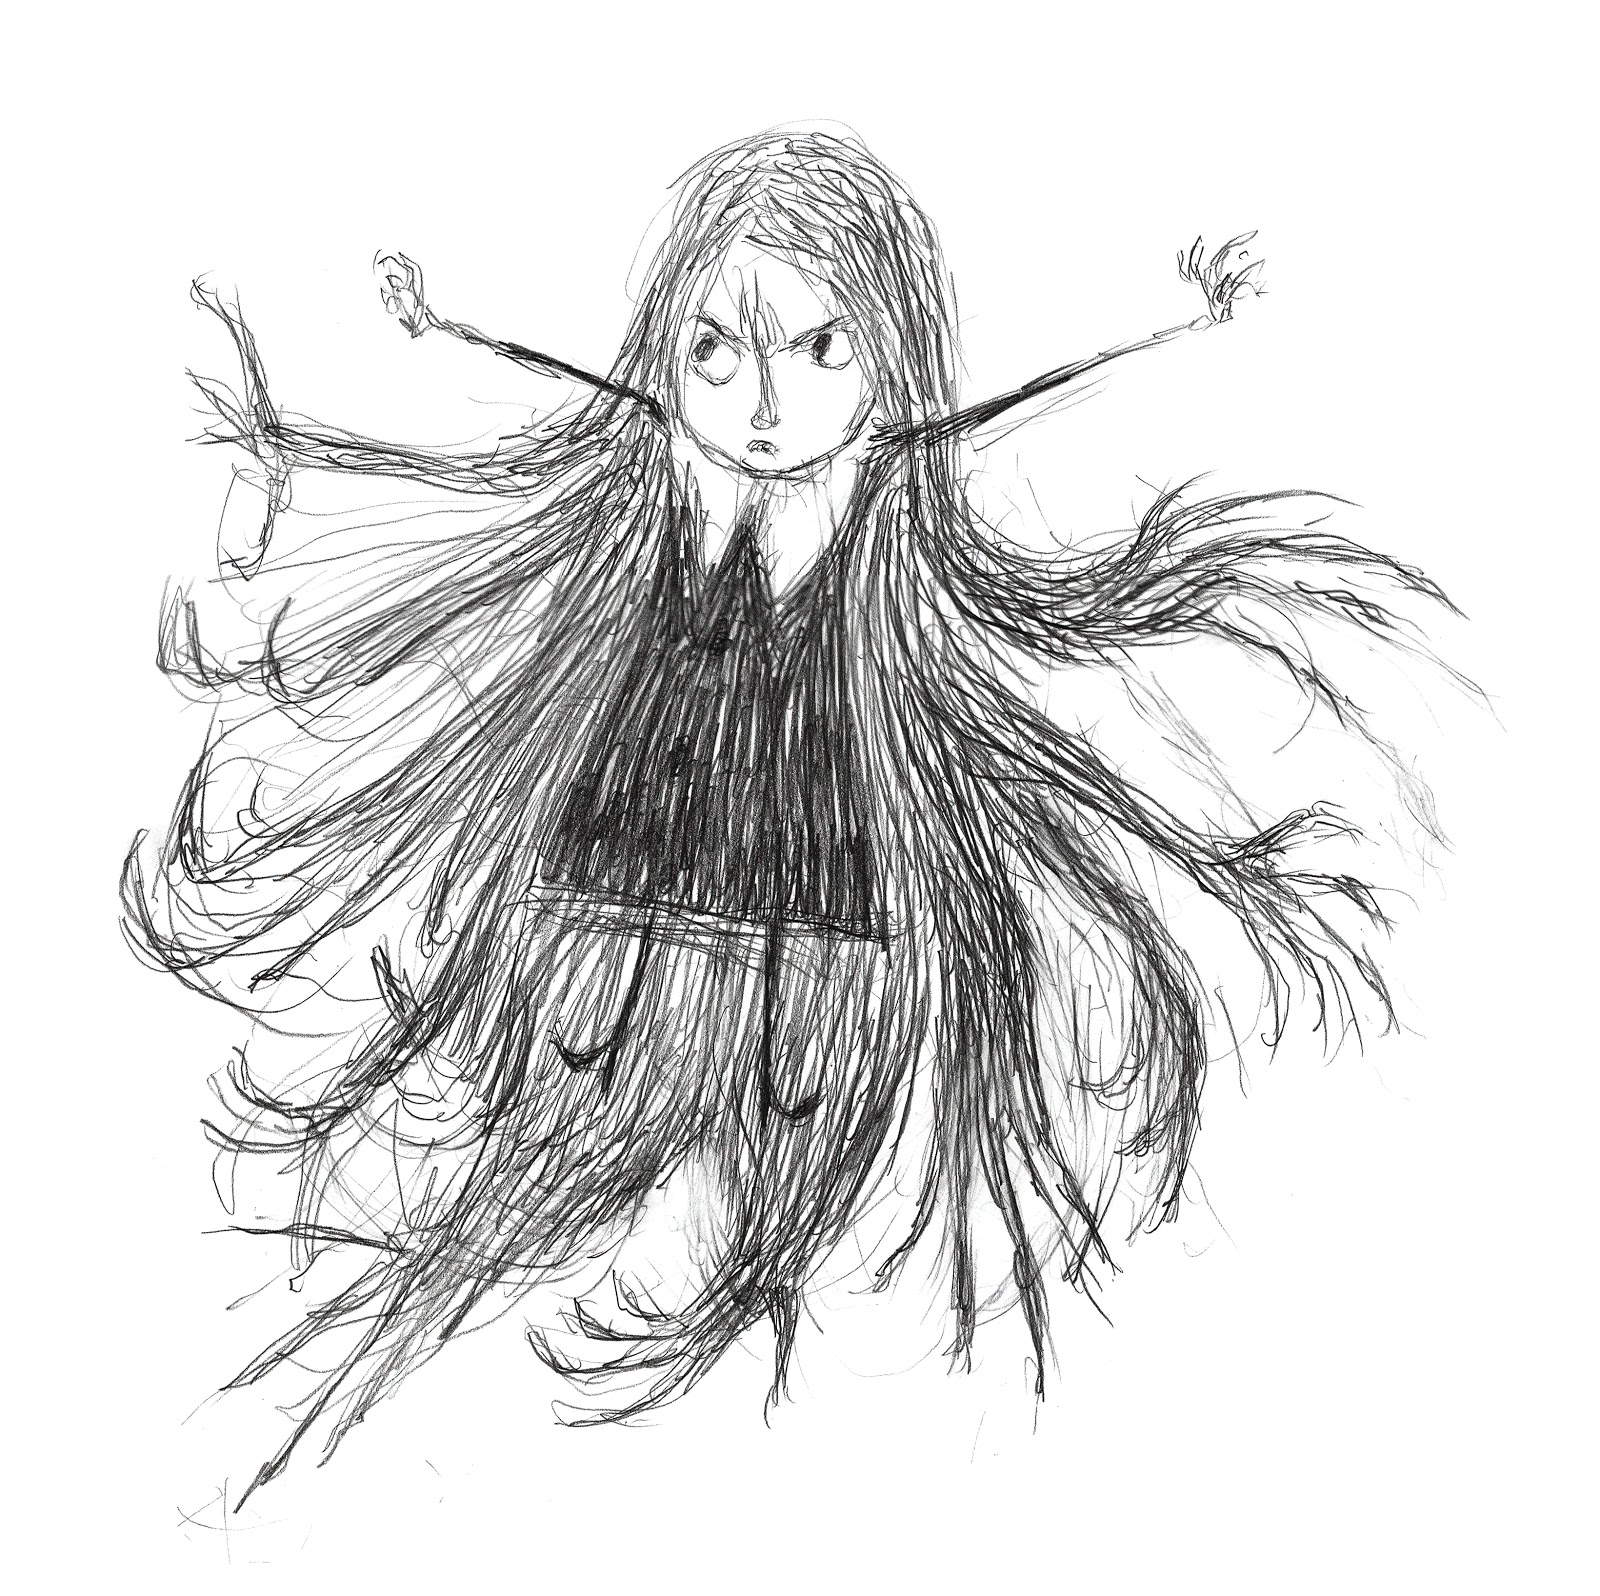 113-paranorman-concept-art-character-design--Angry_Aggie_3.jpg